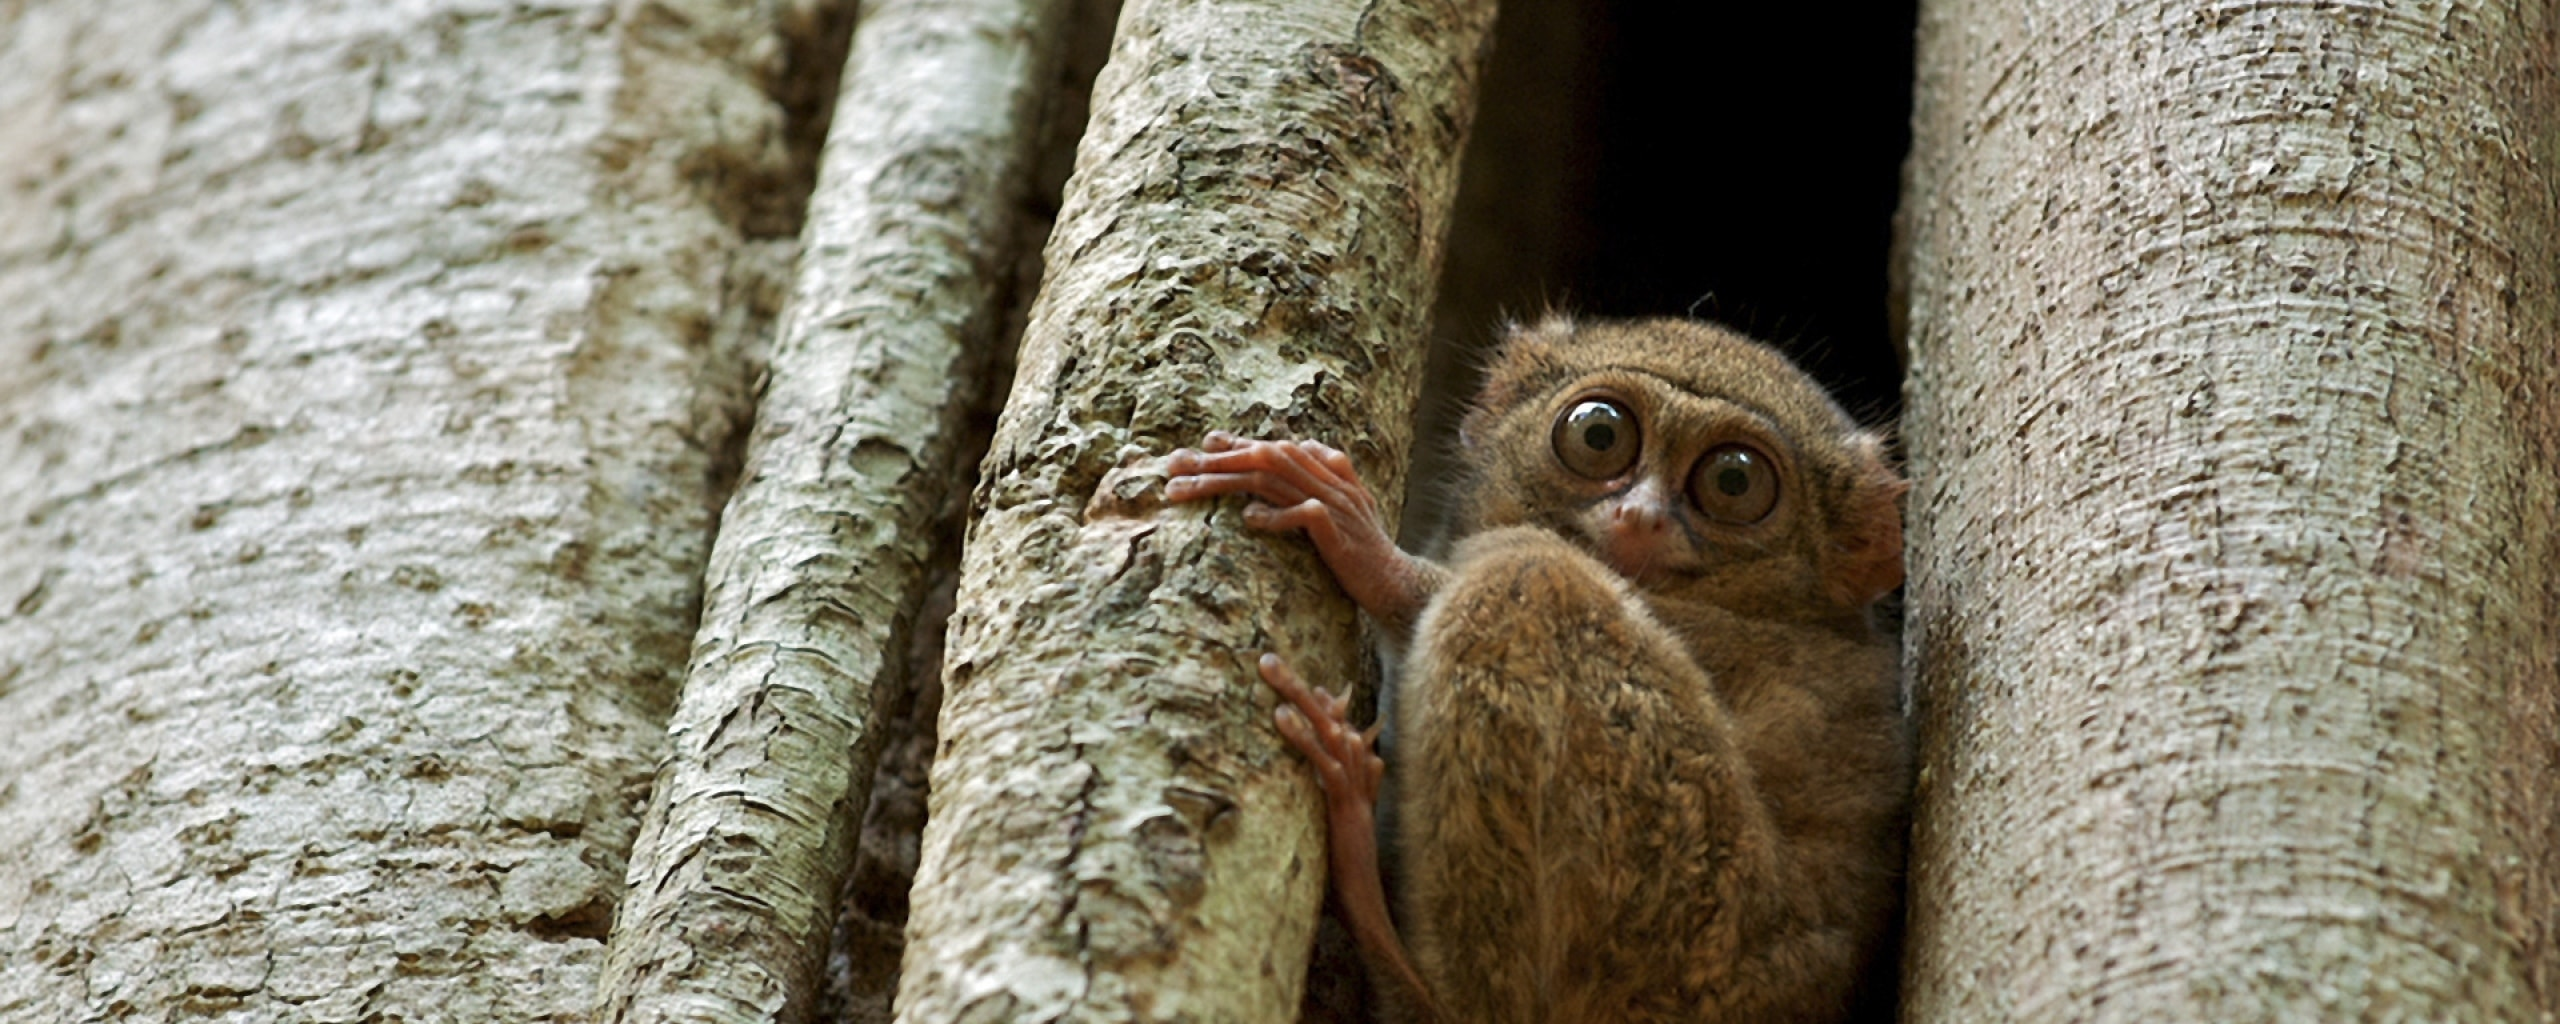 Tarsier widescreen wallpapers